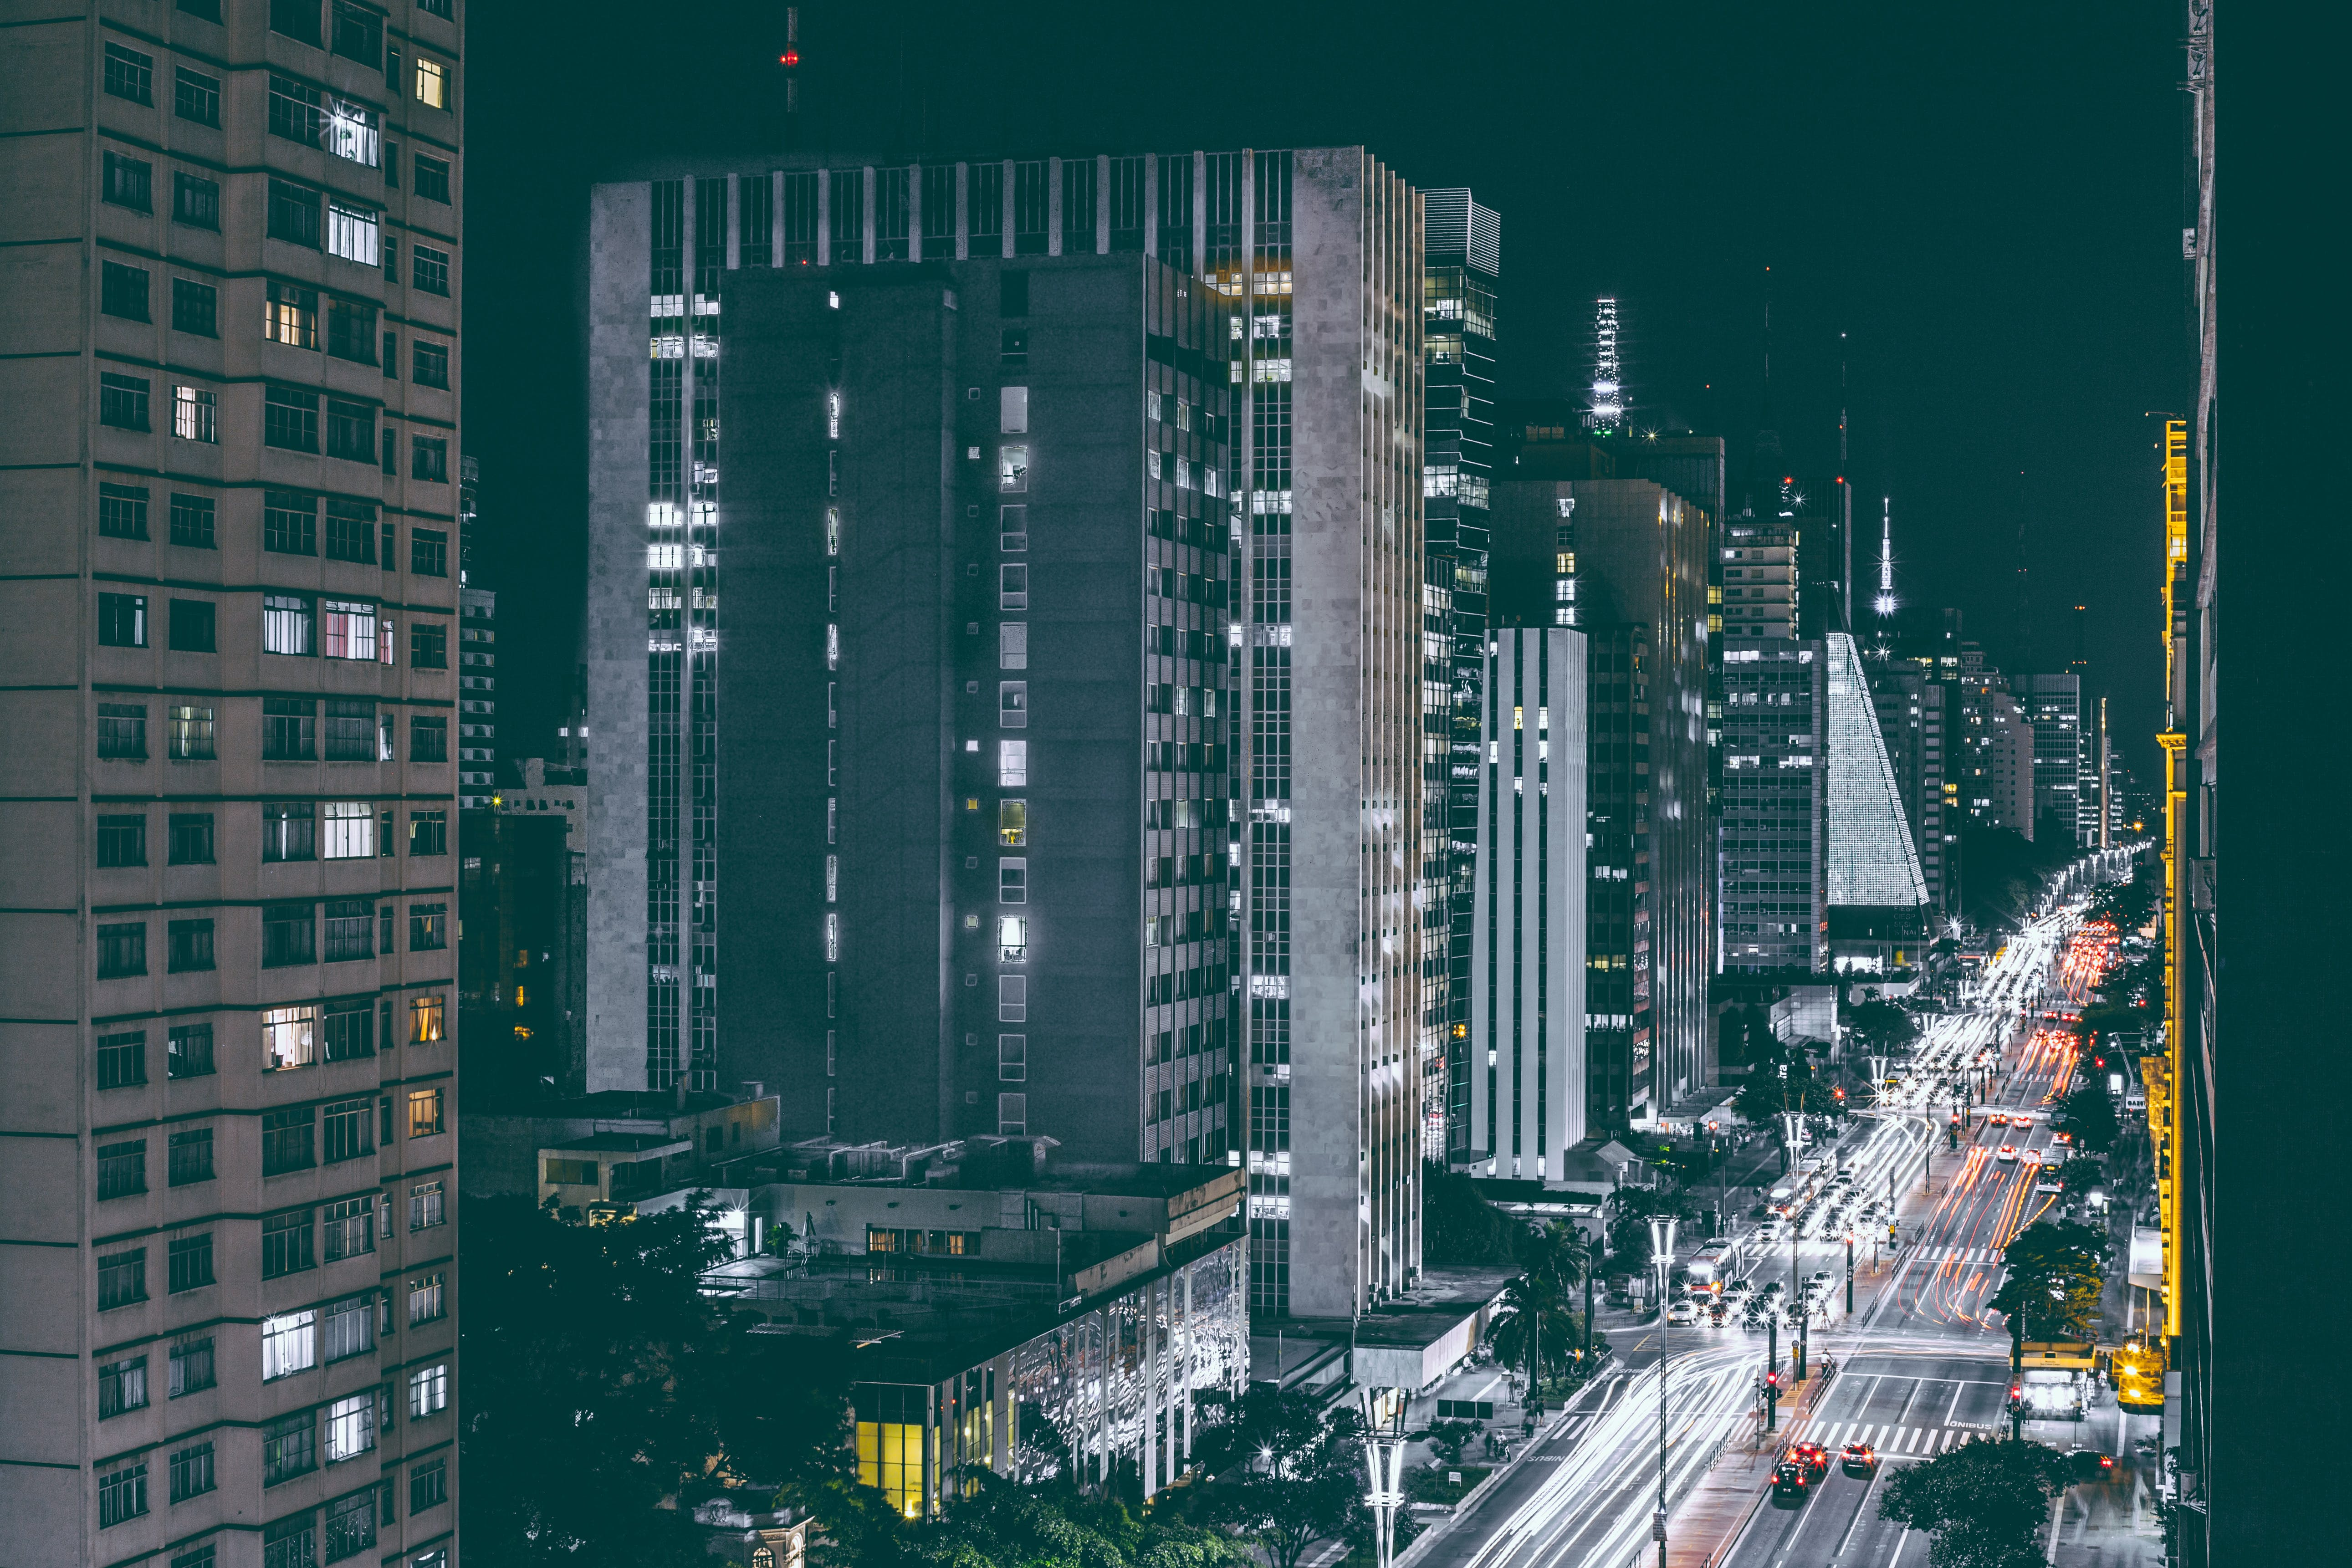 City Lights and Buildings